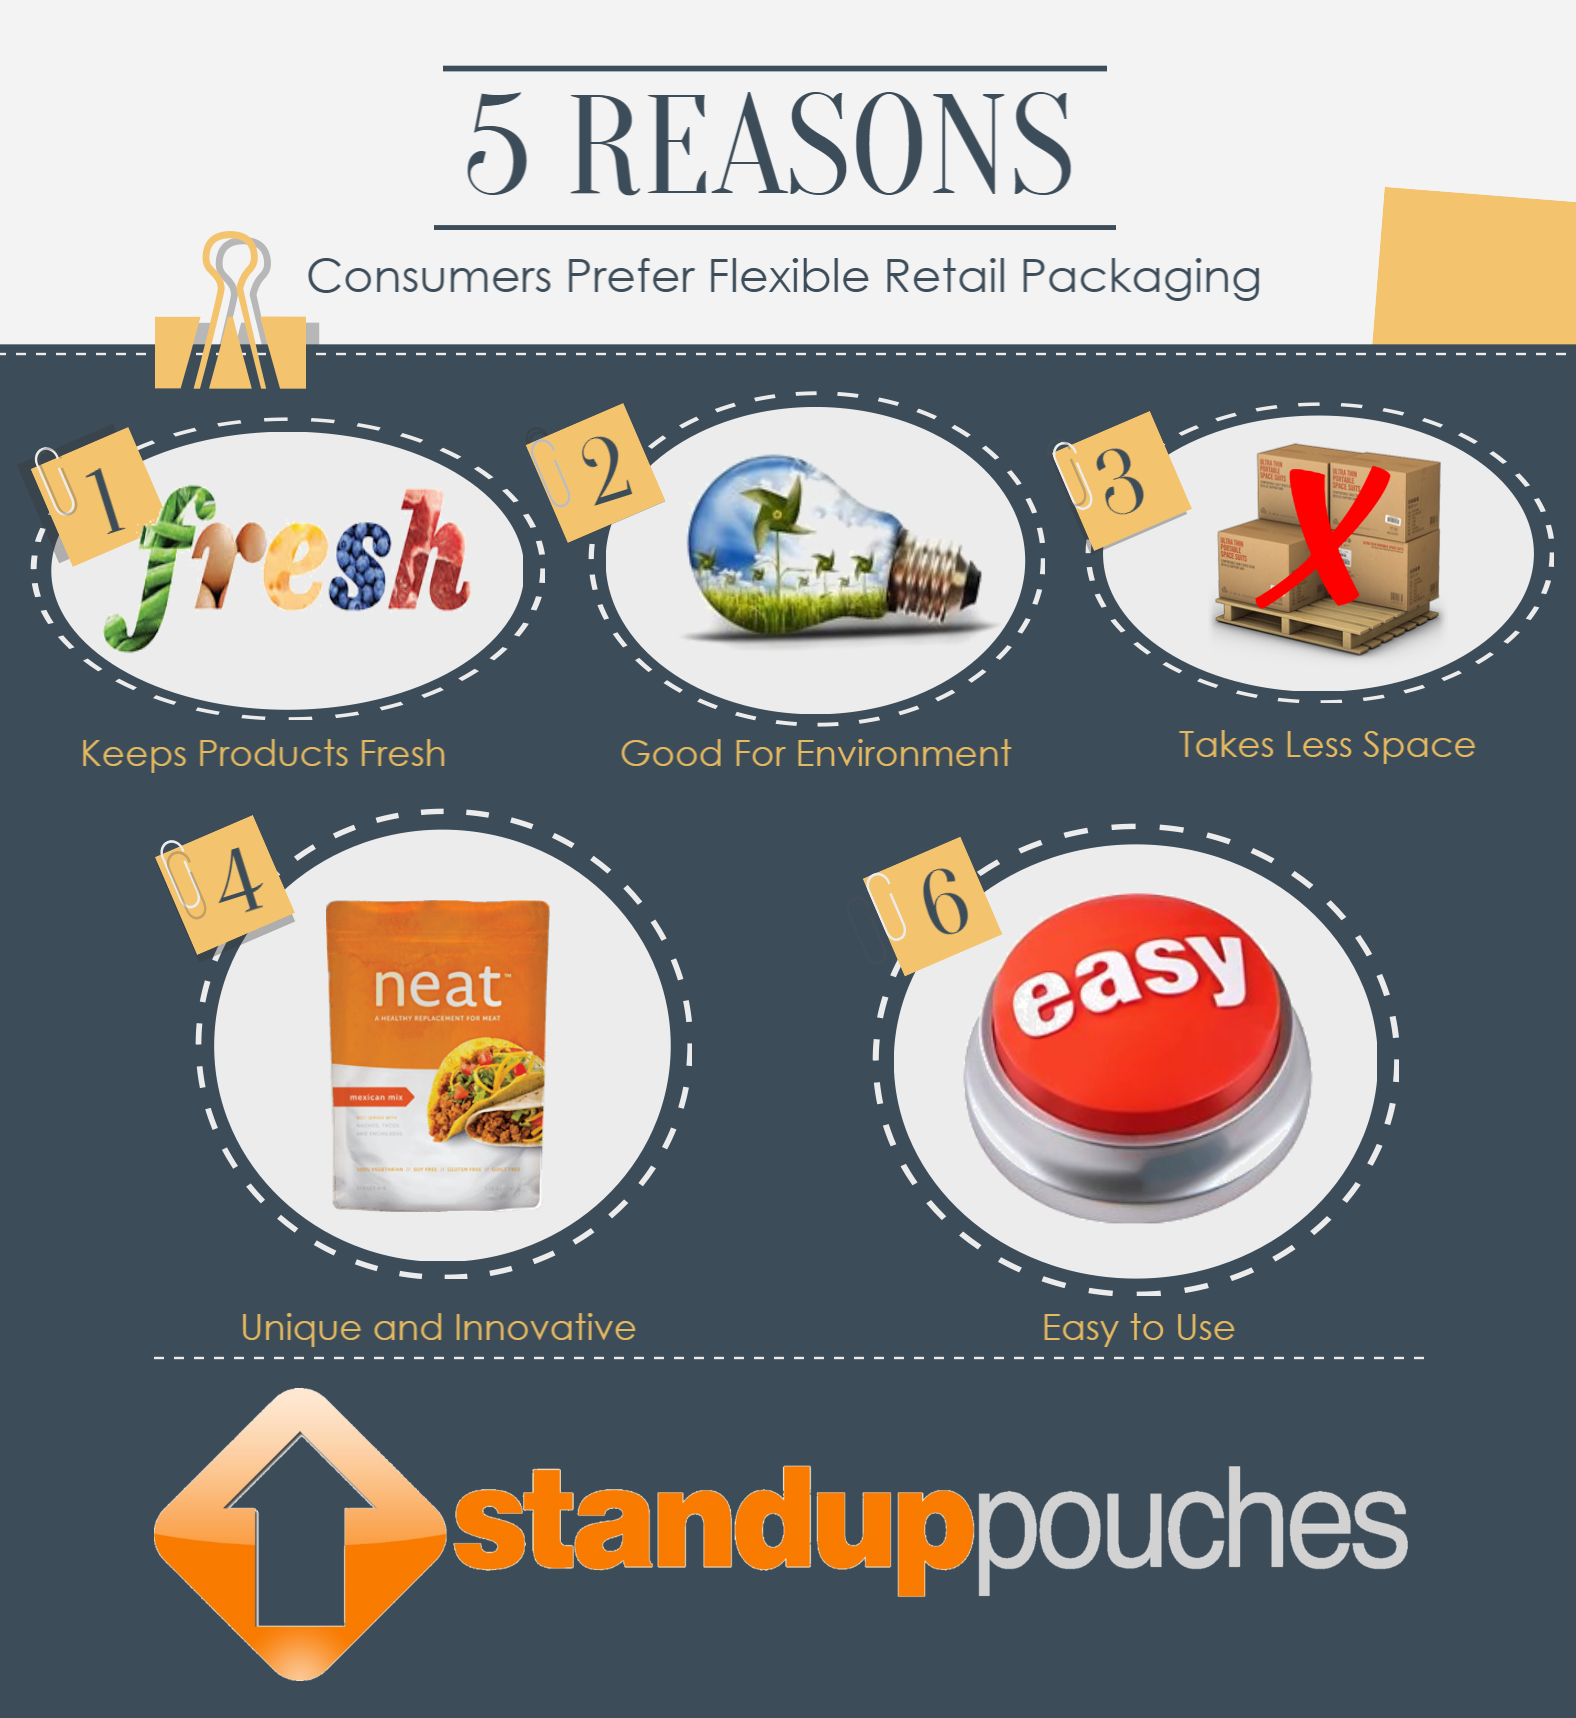 5 Reasons Consumers Prefer Flexible Retail Packaging